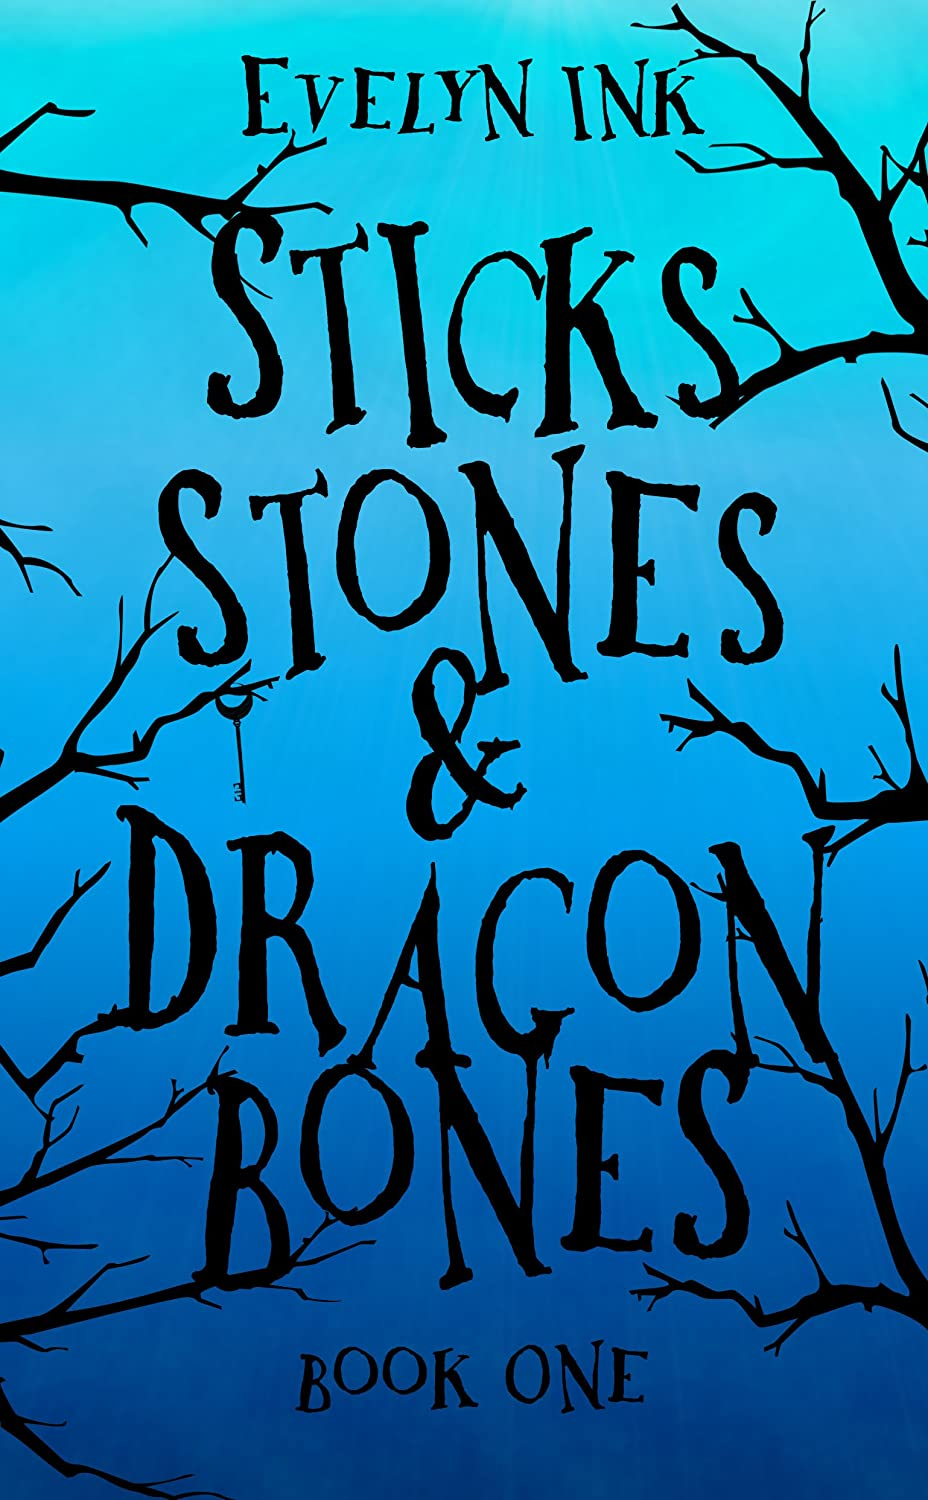 Sticks, Stones, and Dragon Bones (Dragon Bone Series Book 1) by Evelyn Ink